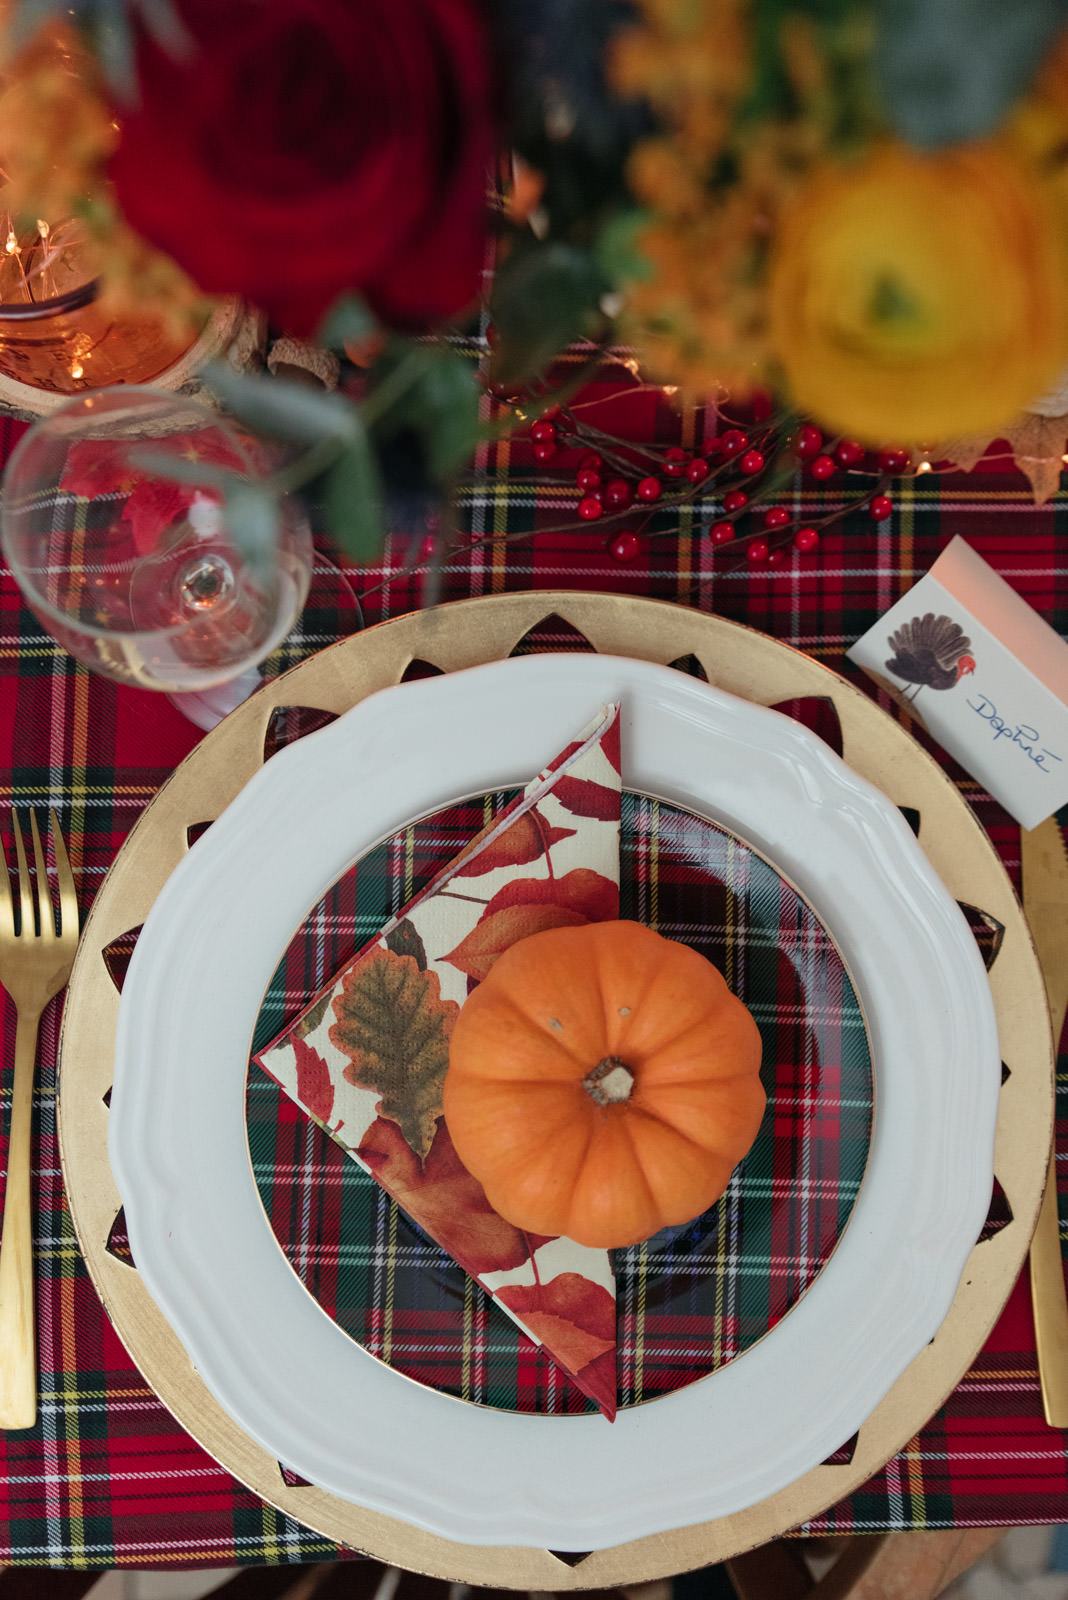 Blog-Mode-And-The-City-Lifestyle-Thanksgiving-2017-5